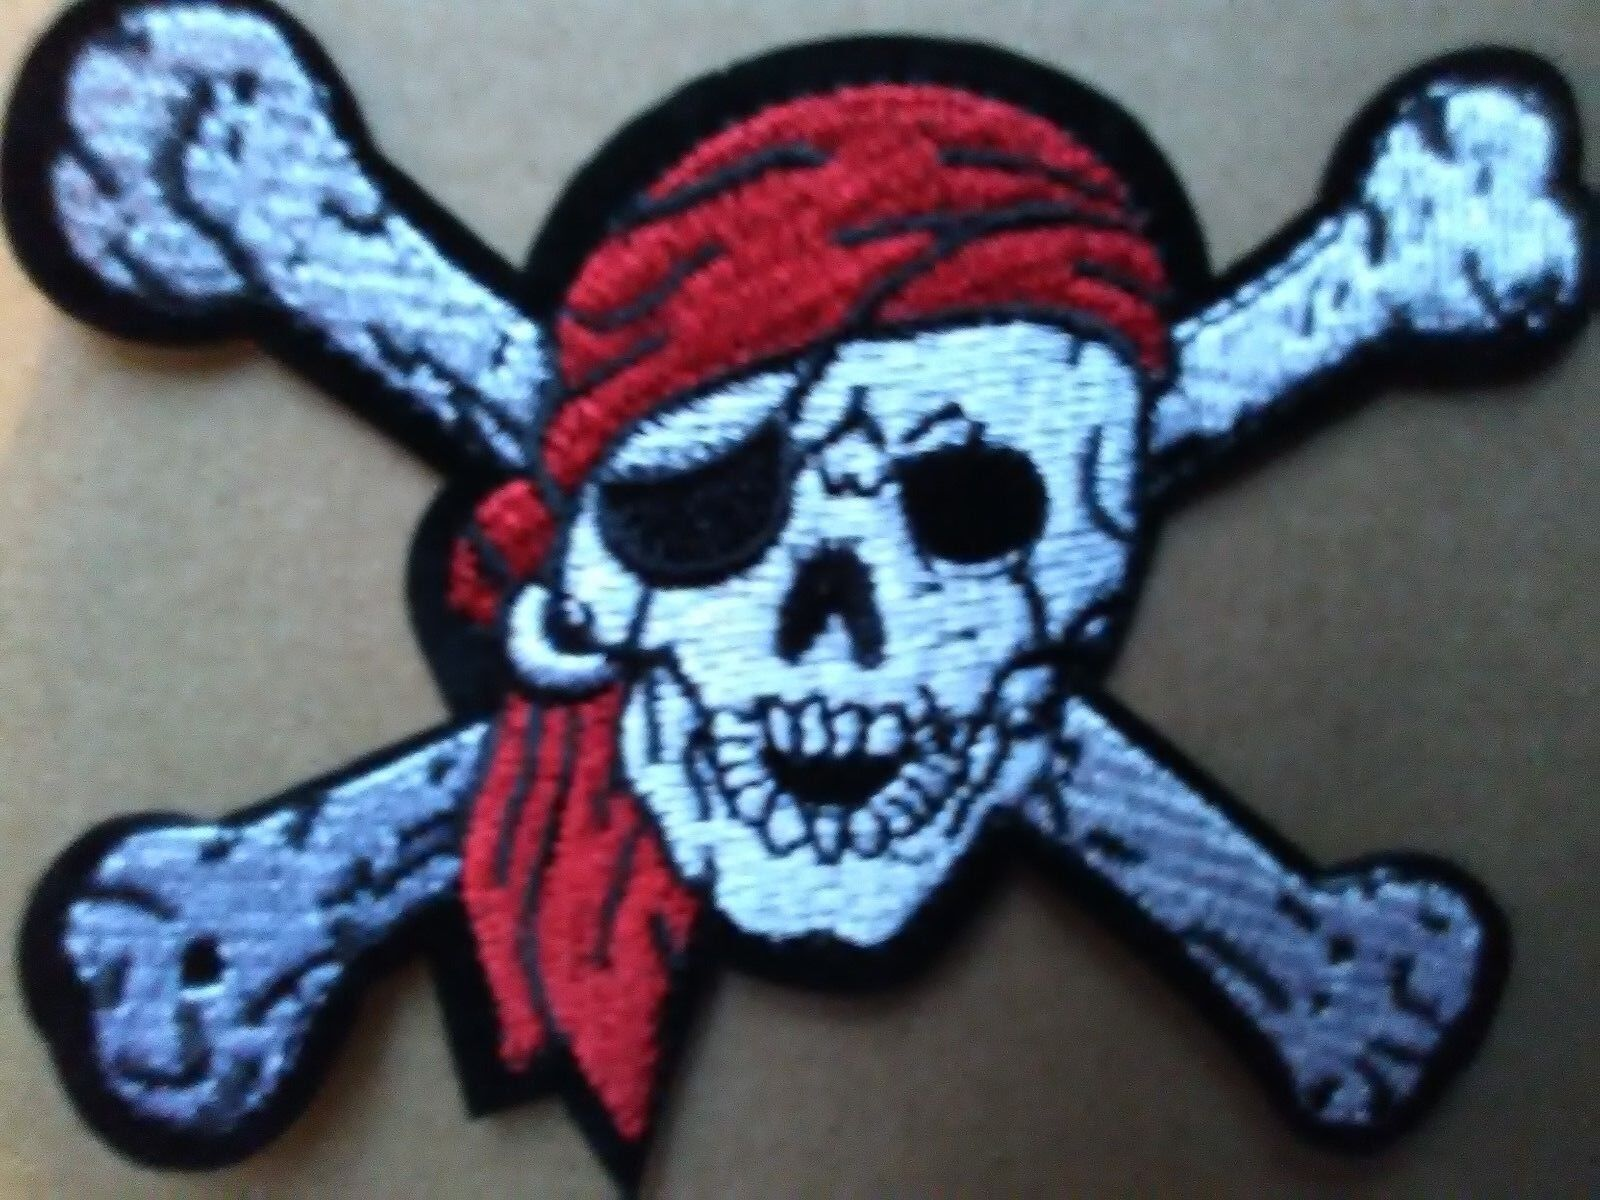 PIRATE SKULL AND CROSSBONES  BIKER STYLE PATCH. SEW OR IRON ON  PATCH